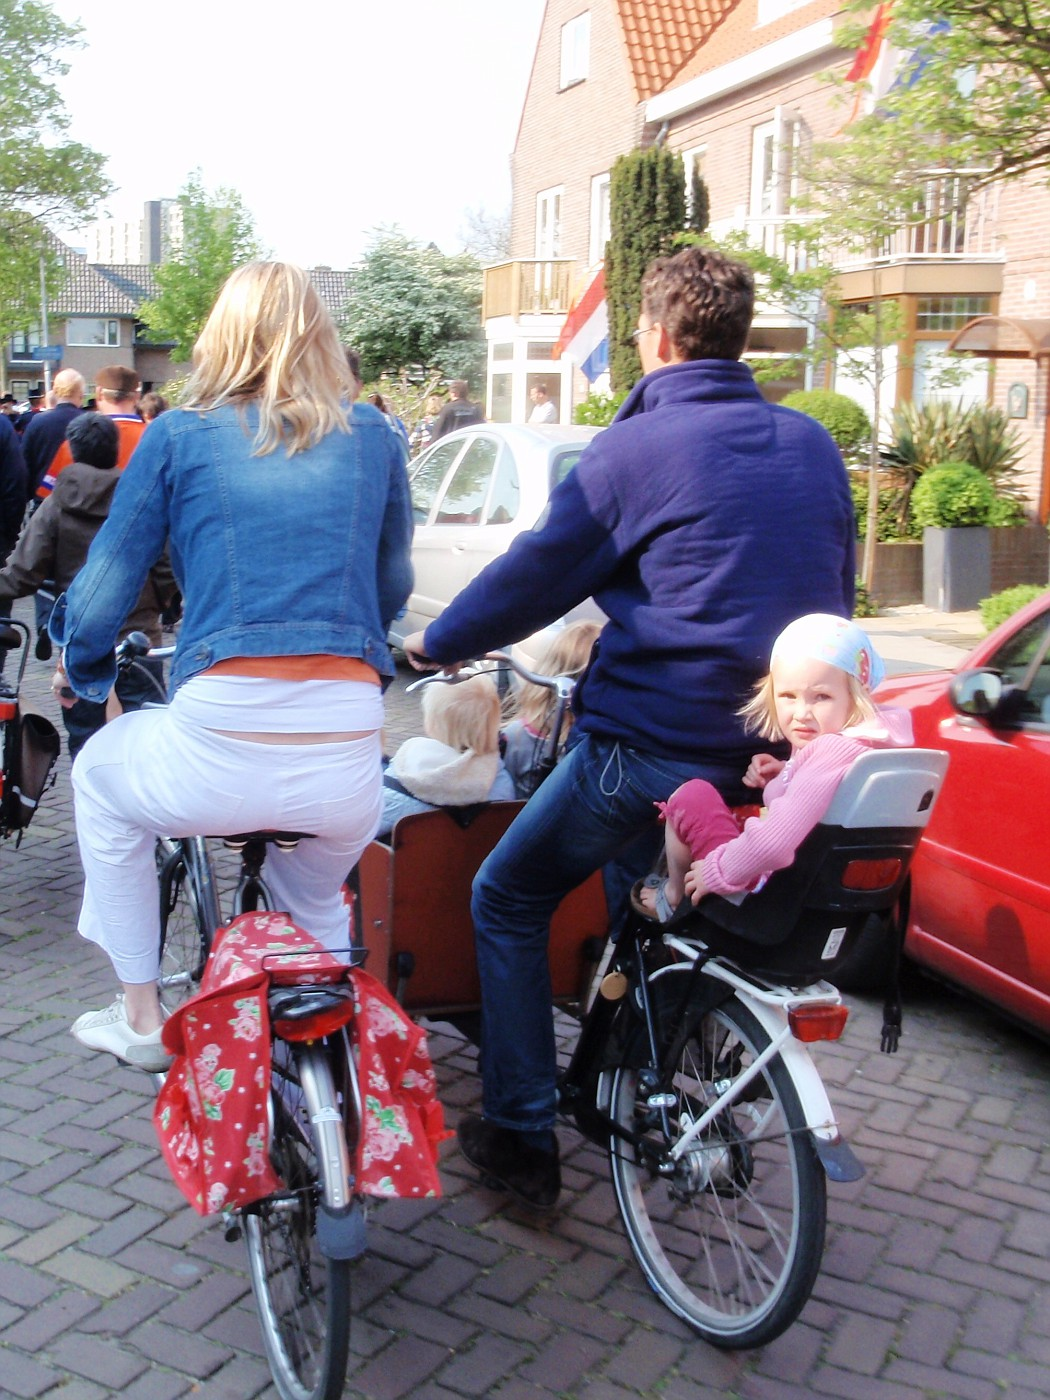 Family cycle life.